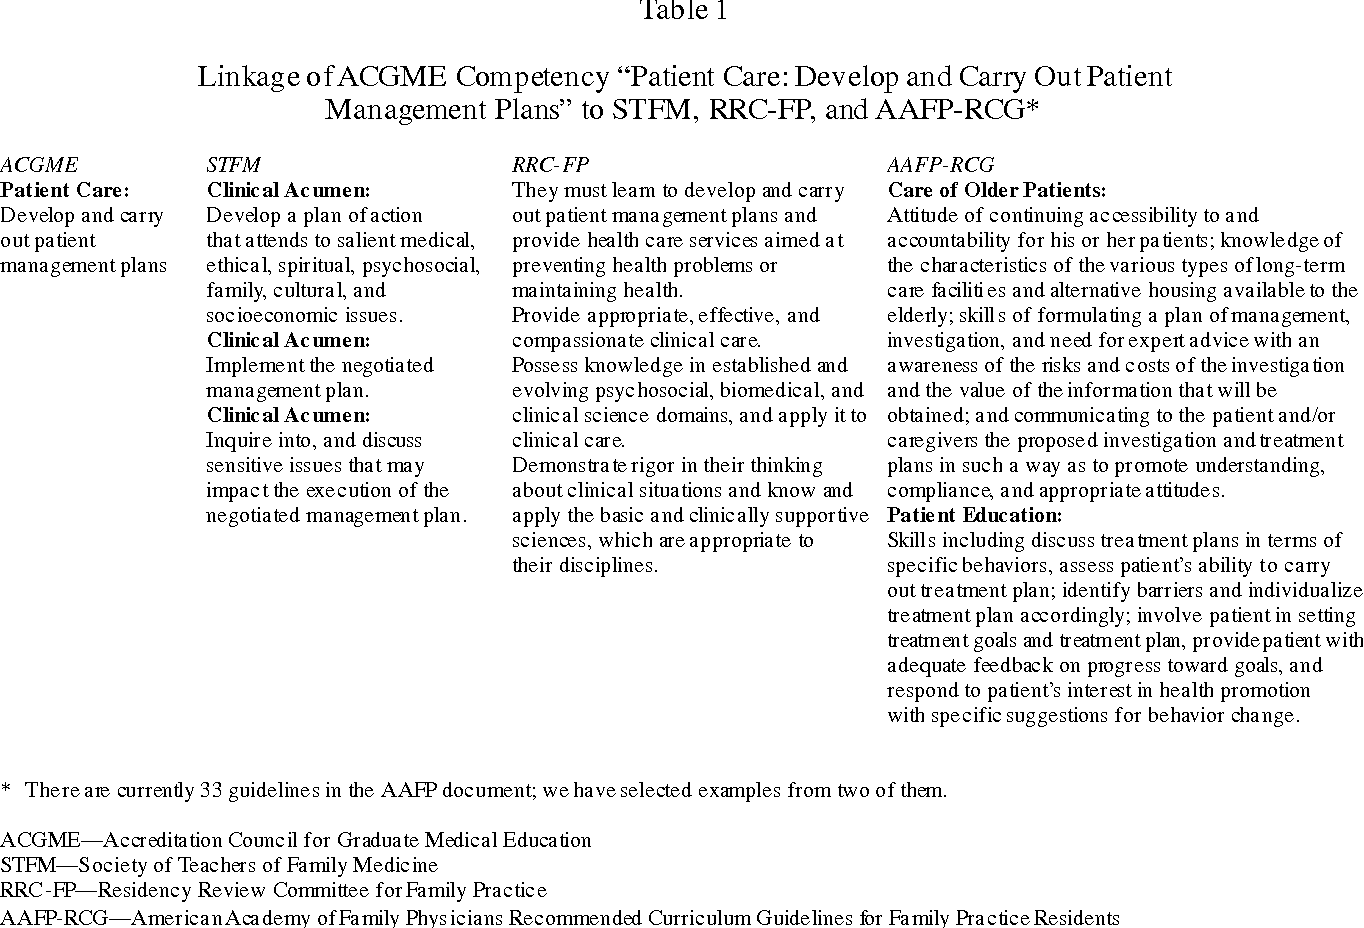 Tying it all together? A competency-based linkage model for